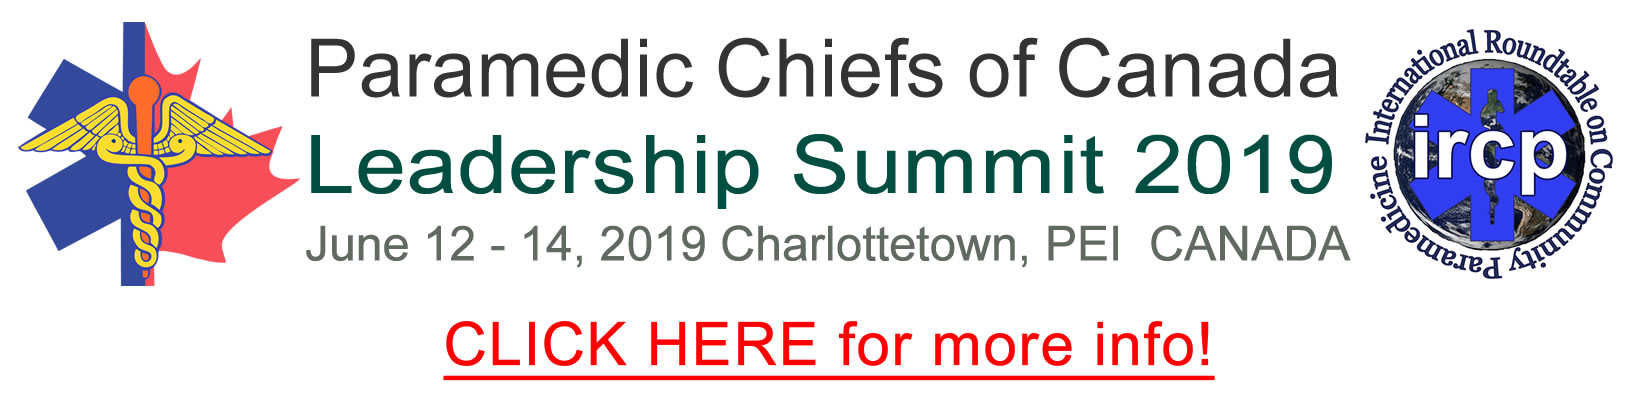 Image result for paramedic chiefs leadership summit charlottetown